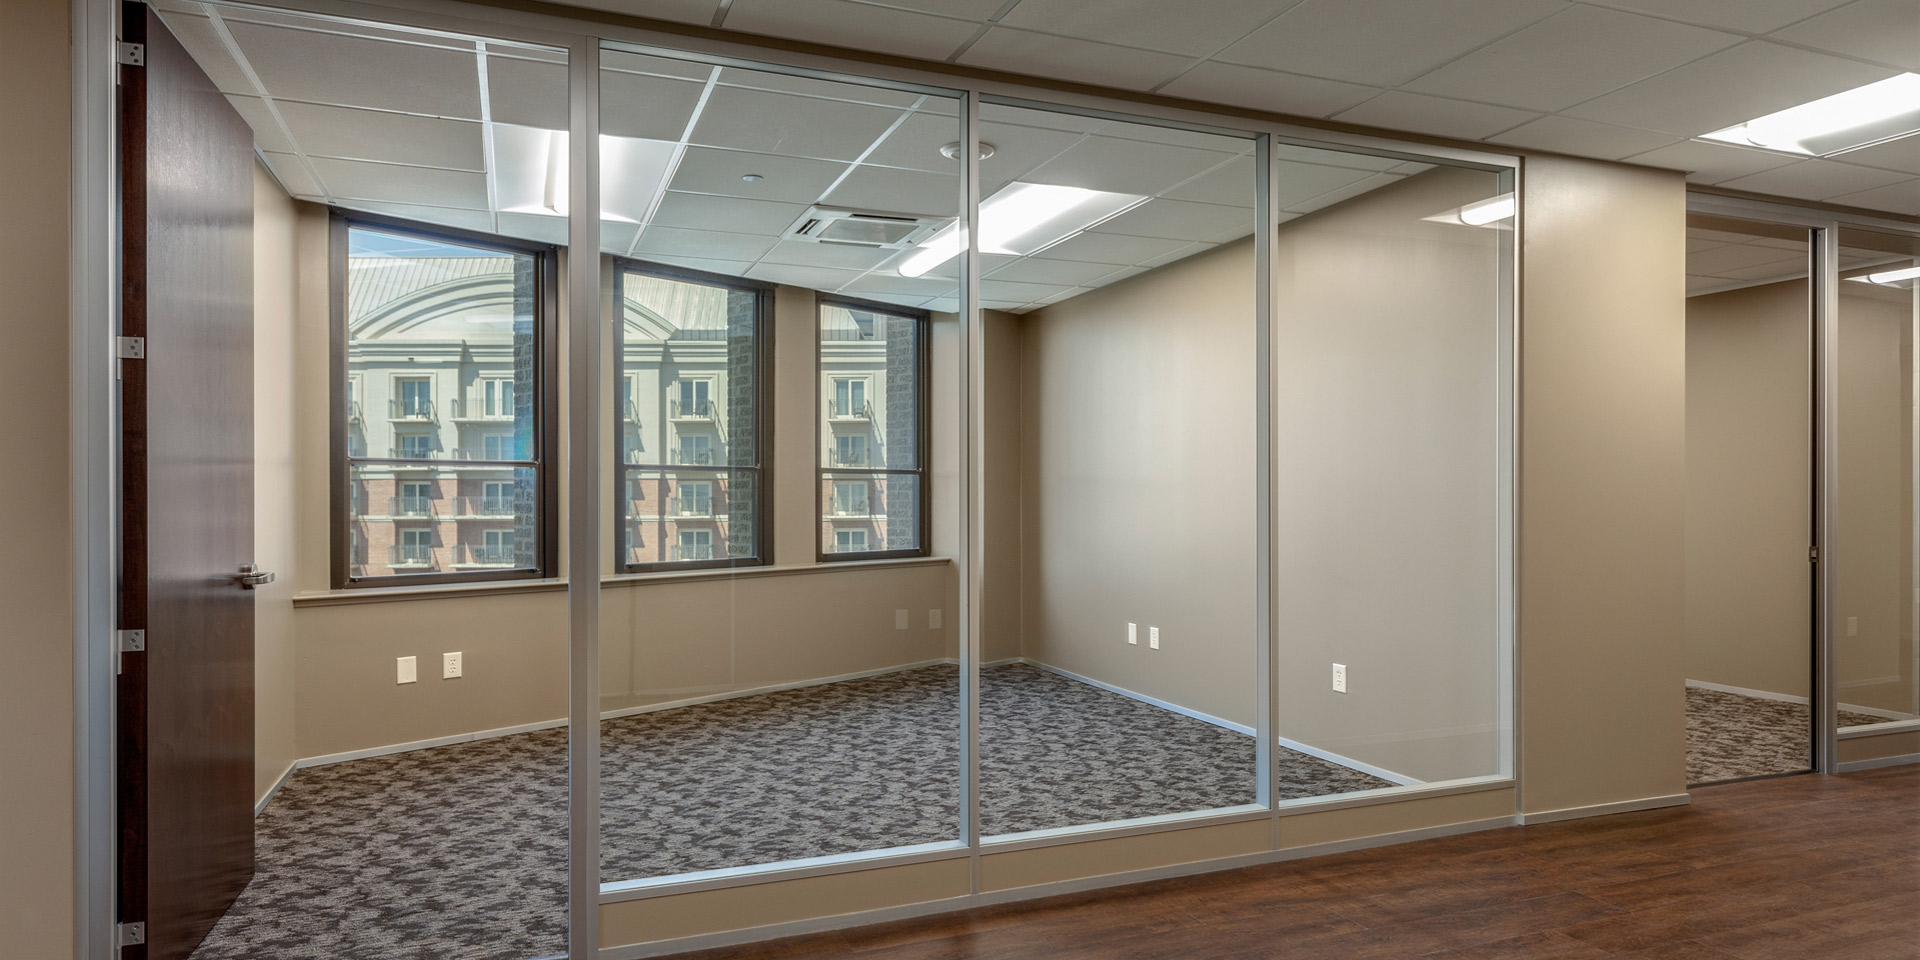 NxtWall Flex Series Architectural Glass Walls with Modular Power Strip